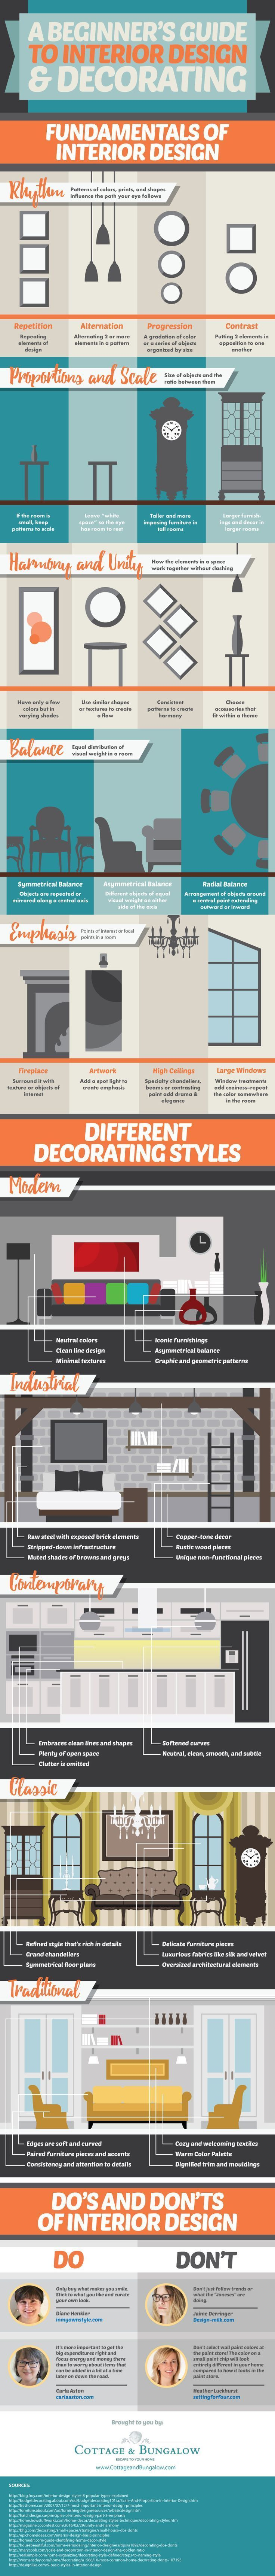 awesome Interior Design Advice: Do's and Don'ts Every Beginner Should Know - Setting for Four by http://www.best100-homedecorpictures.us/home-decor-accessories/interior-design-advice-dos-and-donts-every-beginner-should-know-setting-for-four/